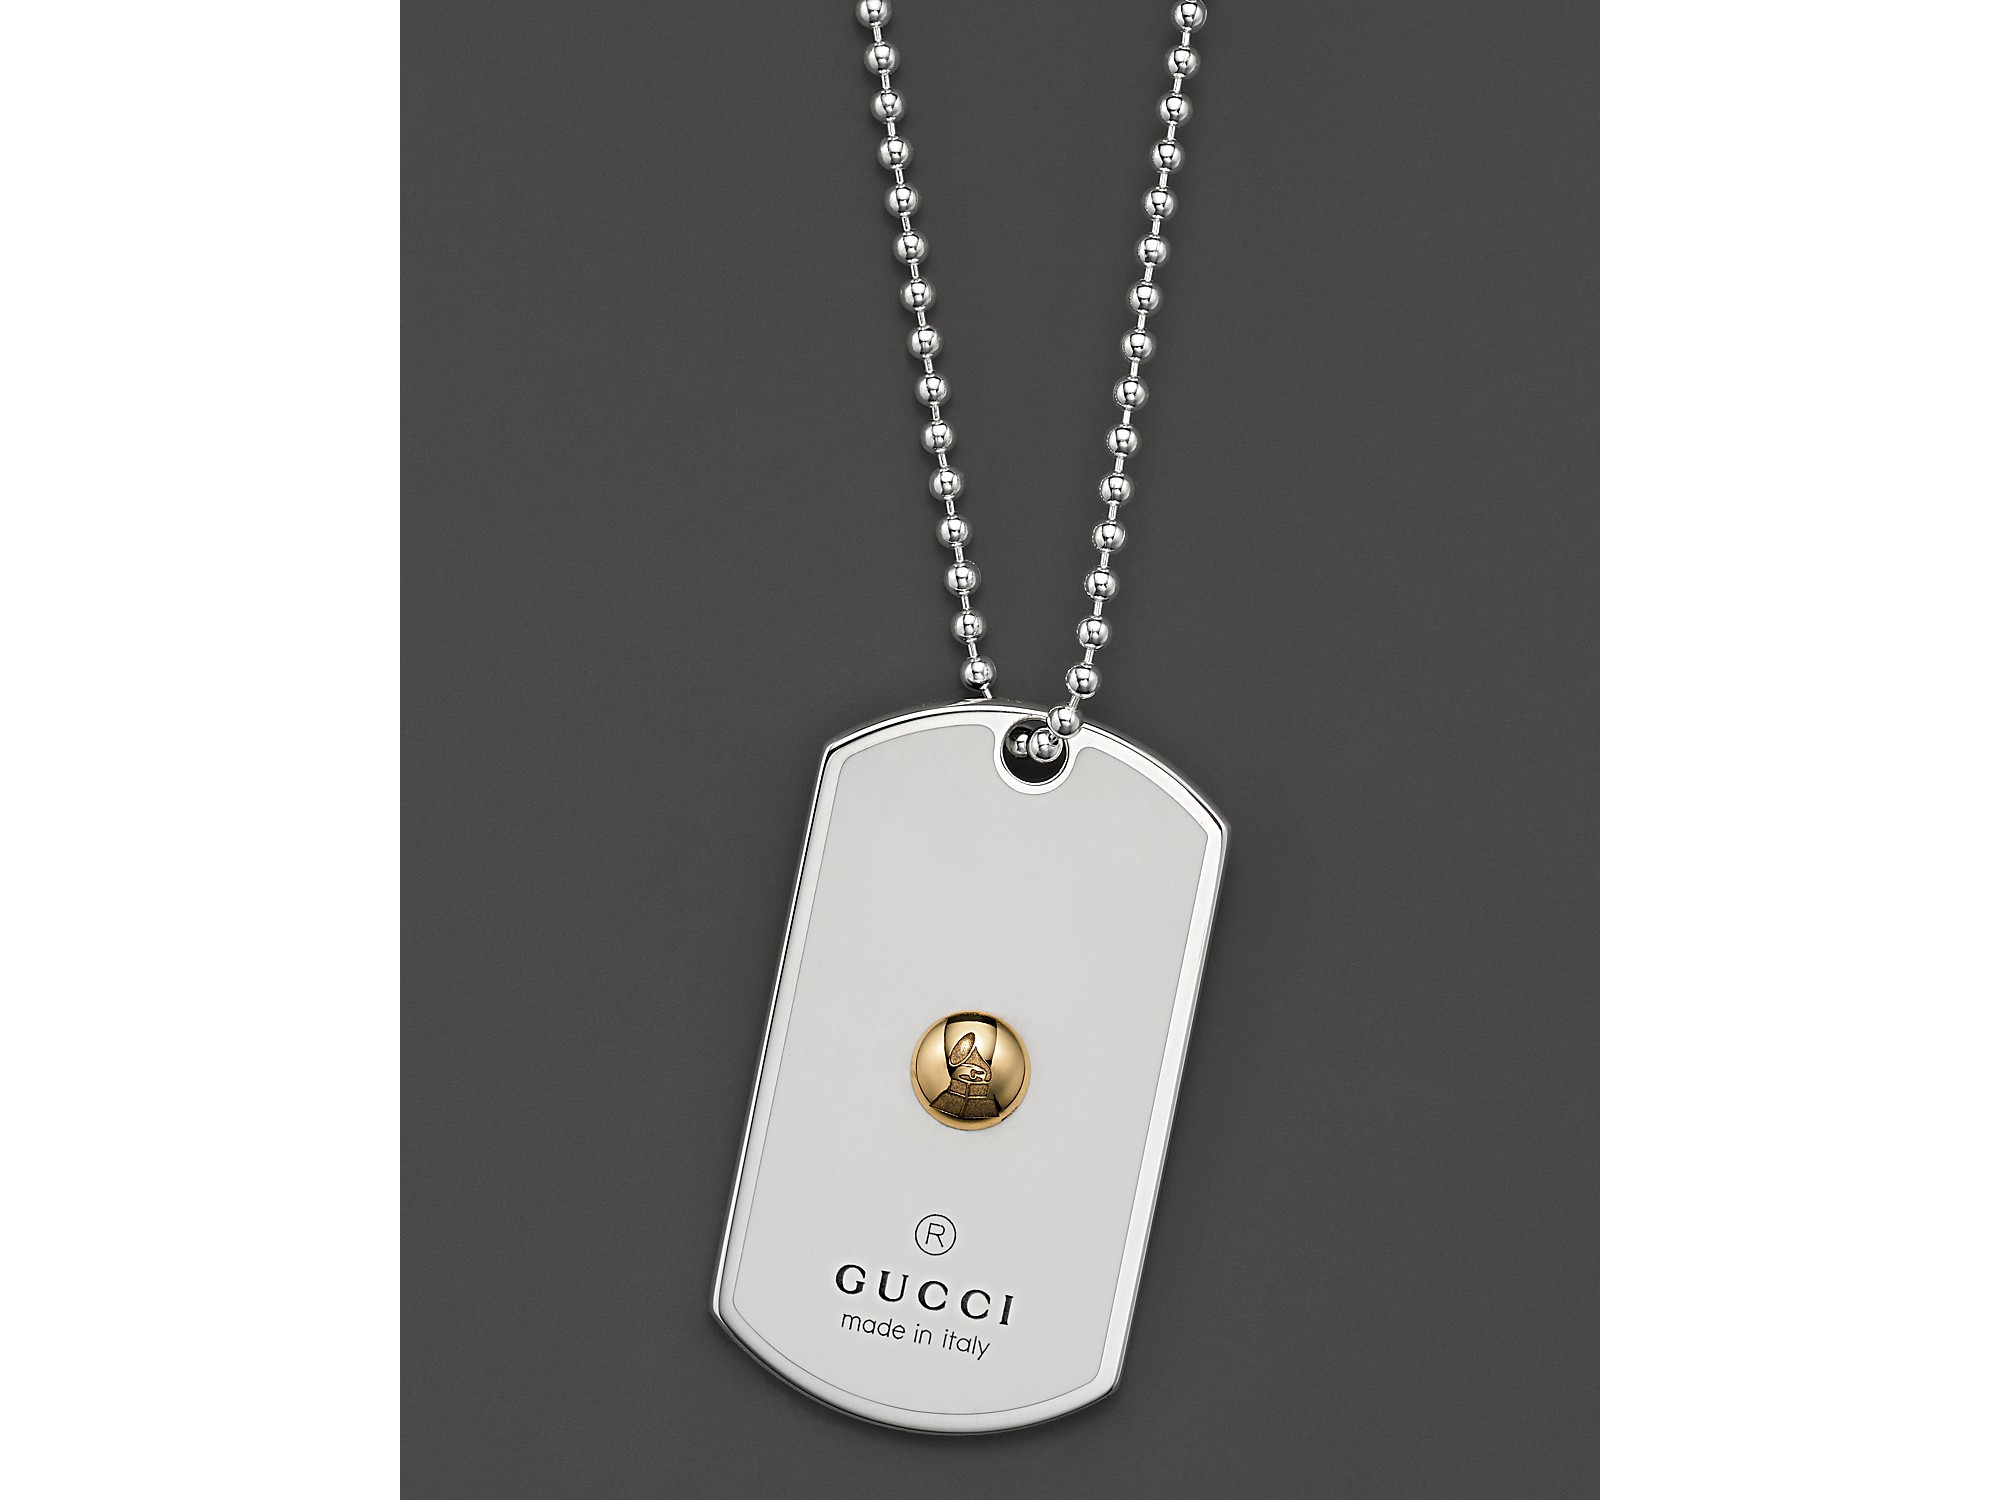 gucci necklace mens. gallery gucci necklace mens o